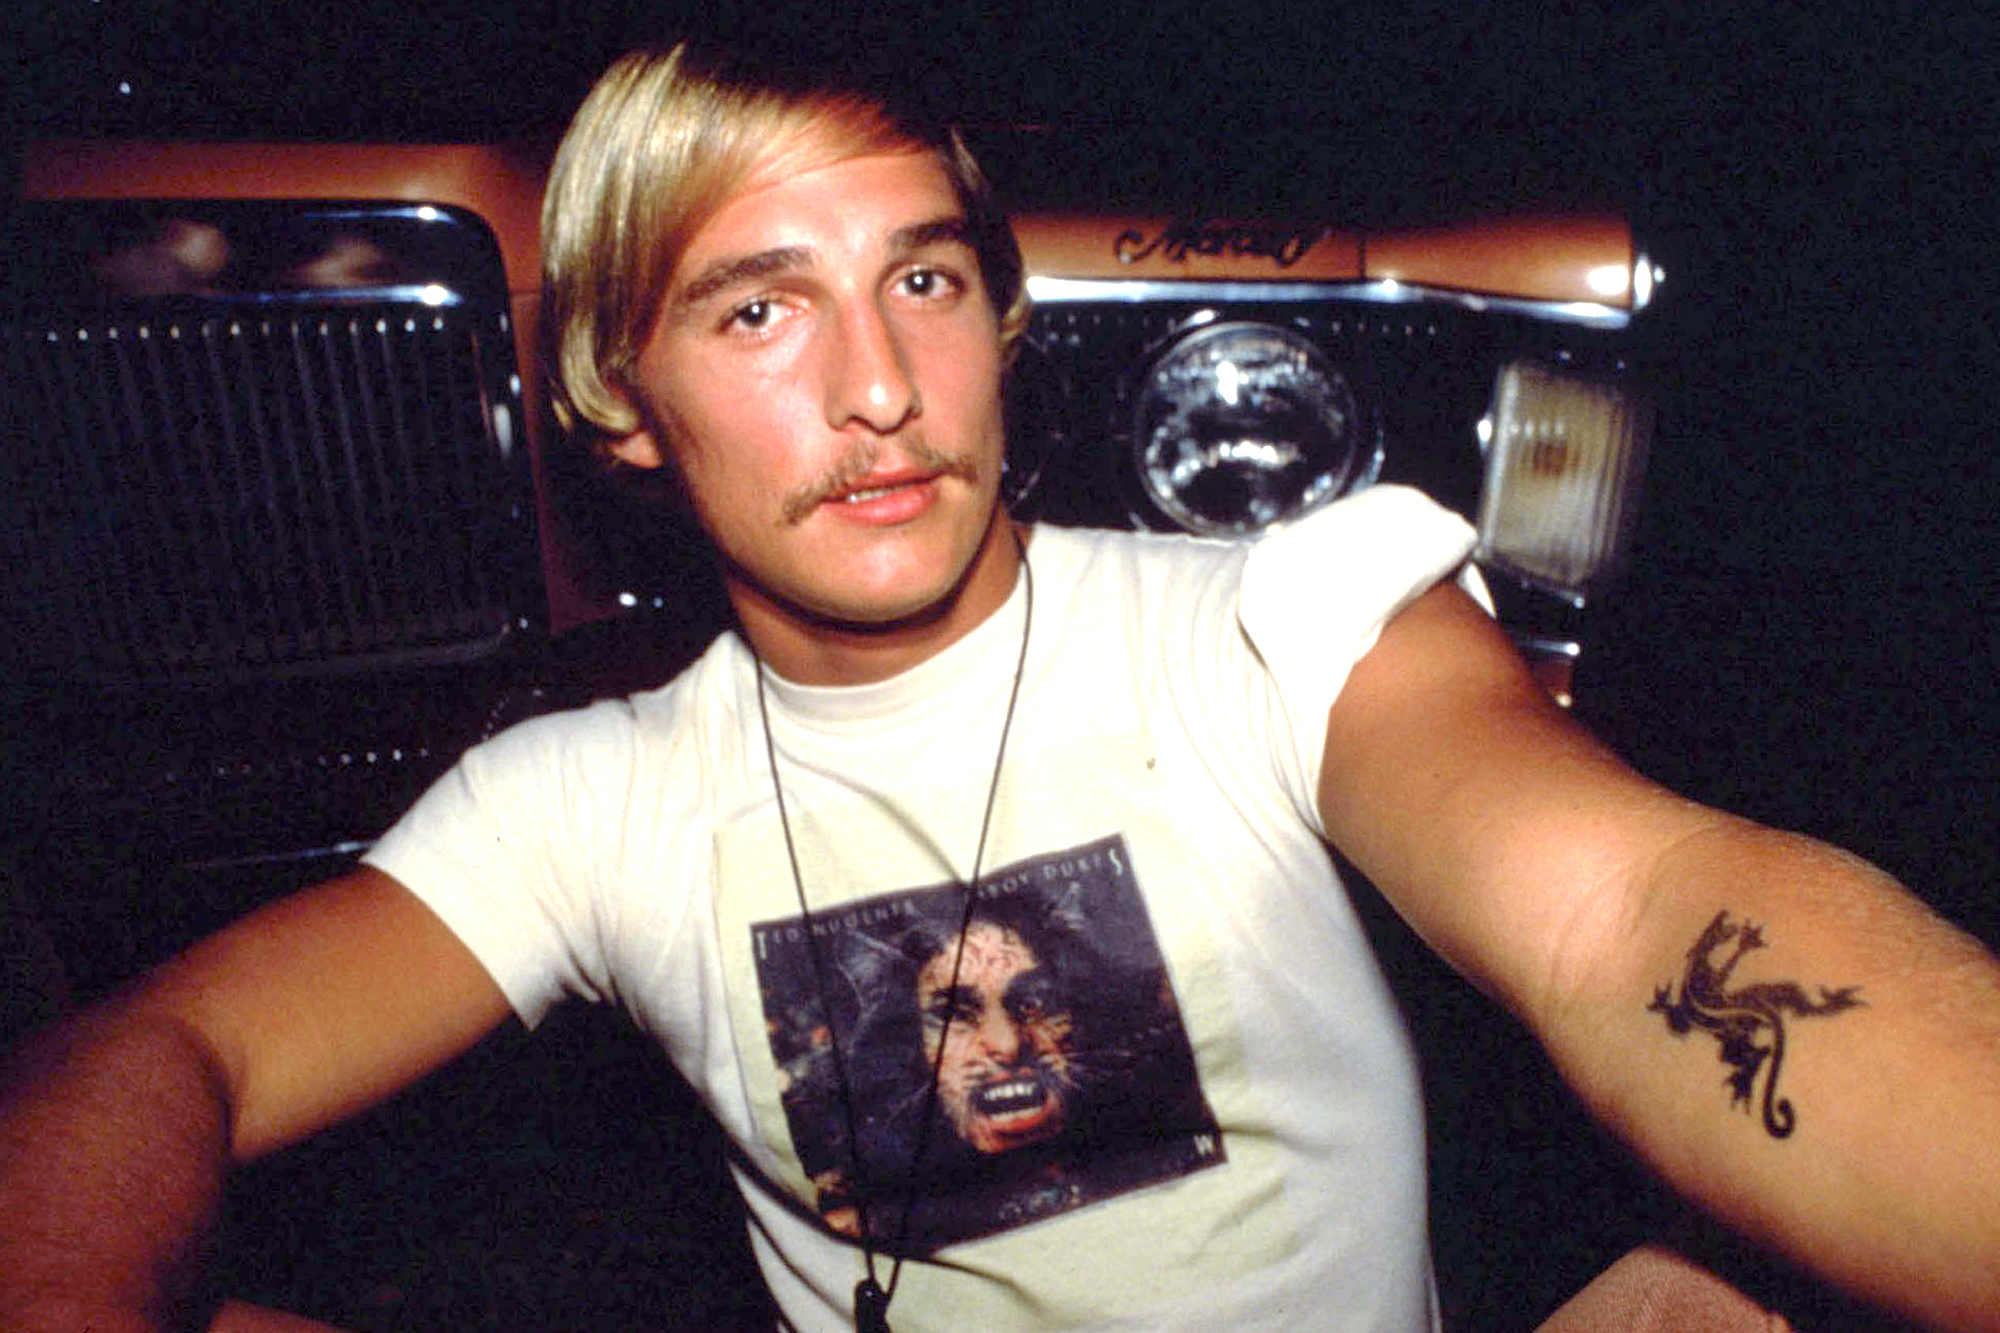 Matthew McConaughey as Wooderson in Dazed and Confused